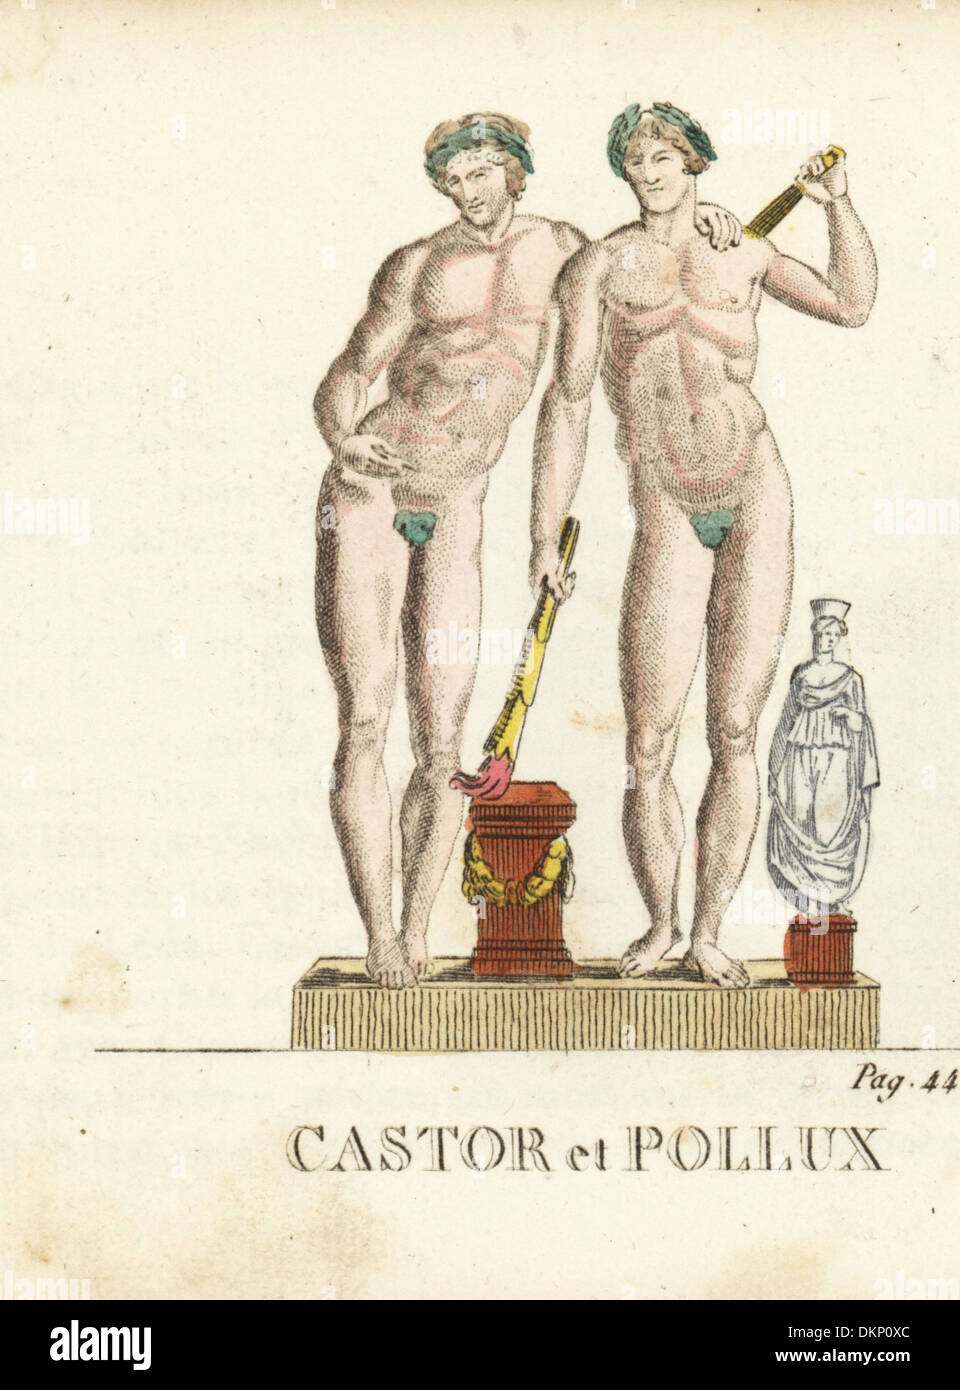 Castor and Pollux, Greek and Roman twin gods, with torches, garlands. - Stock Image